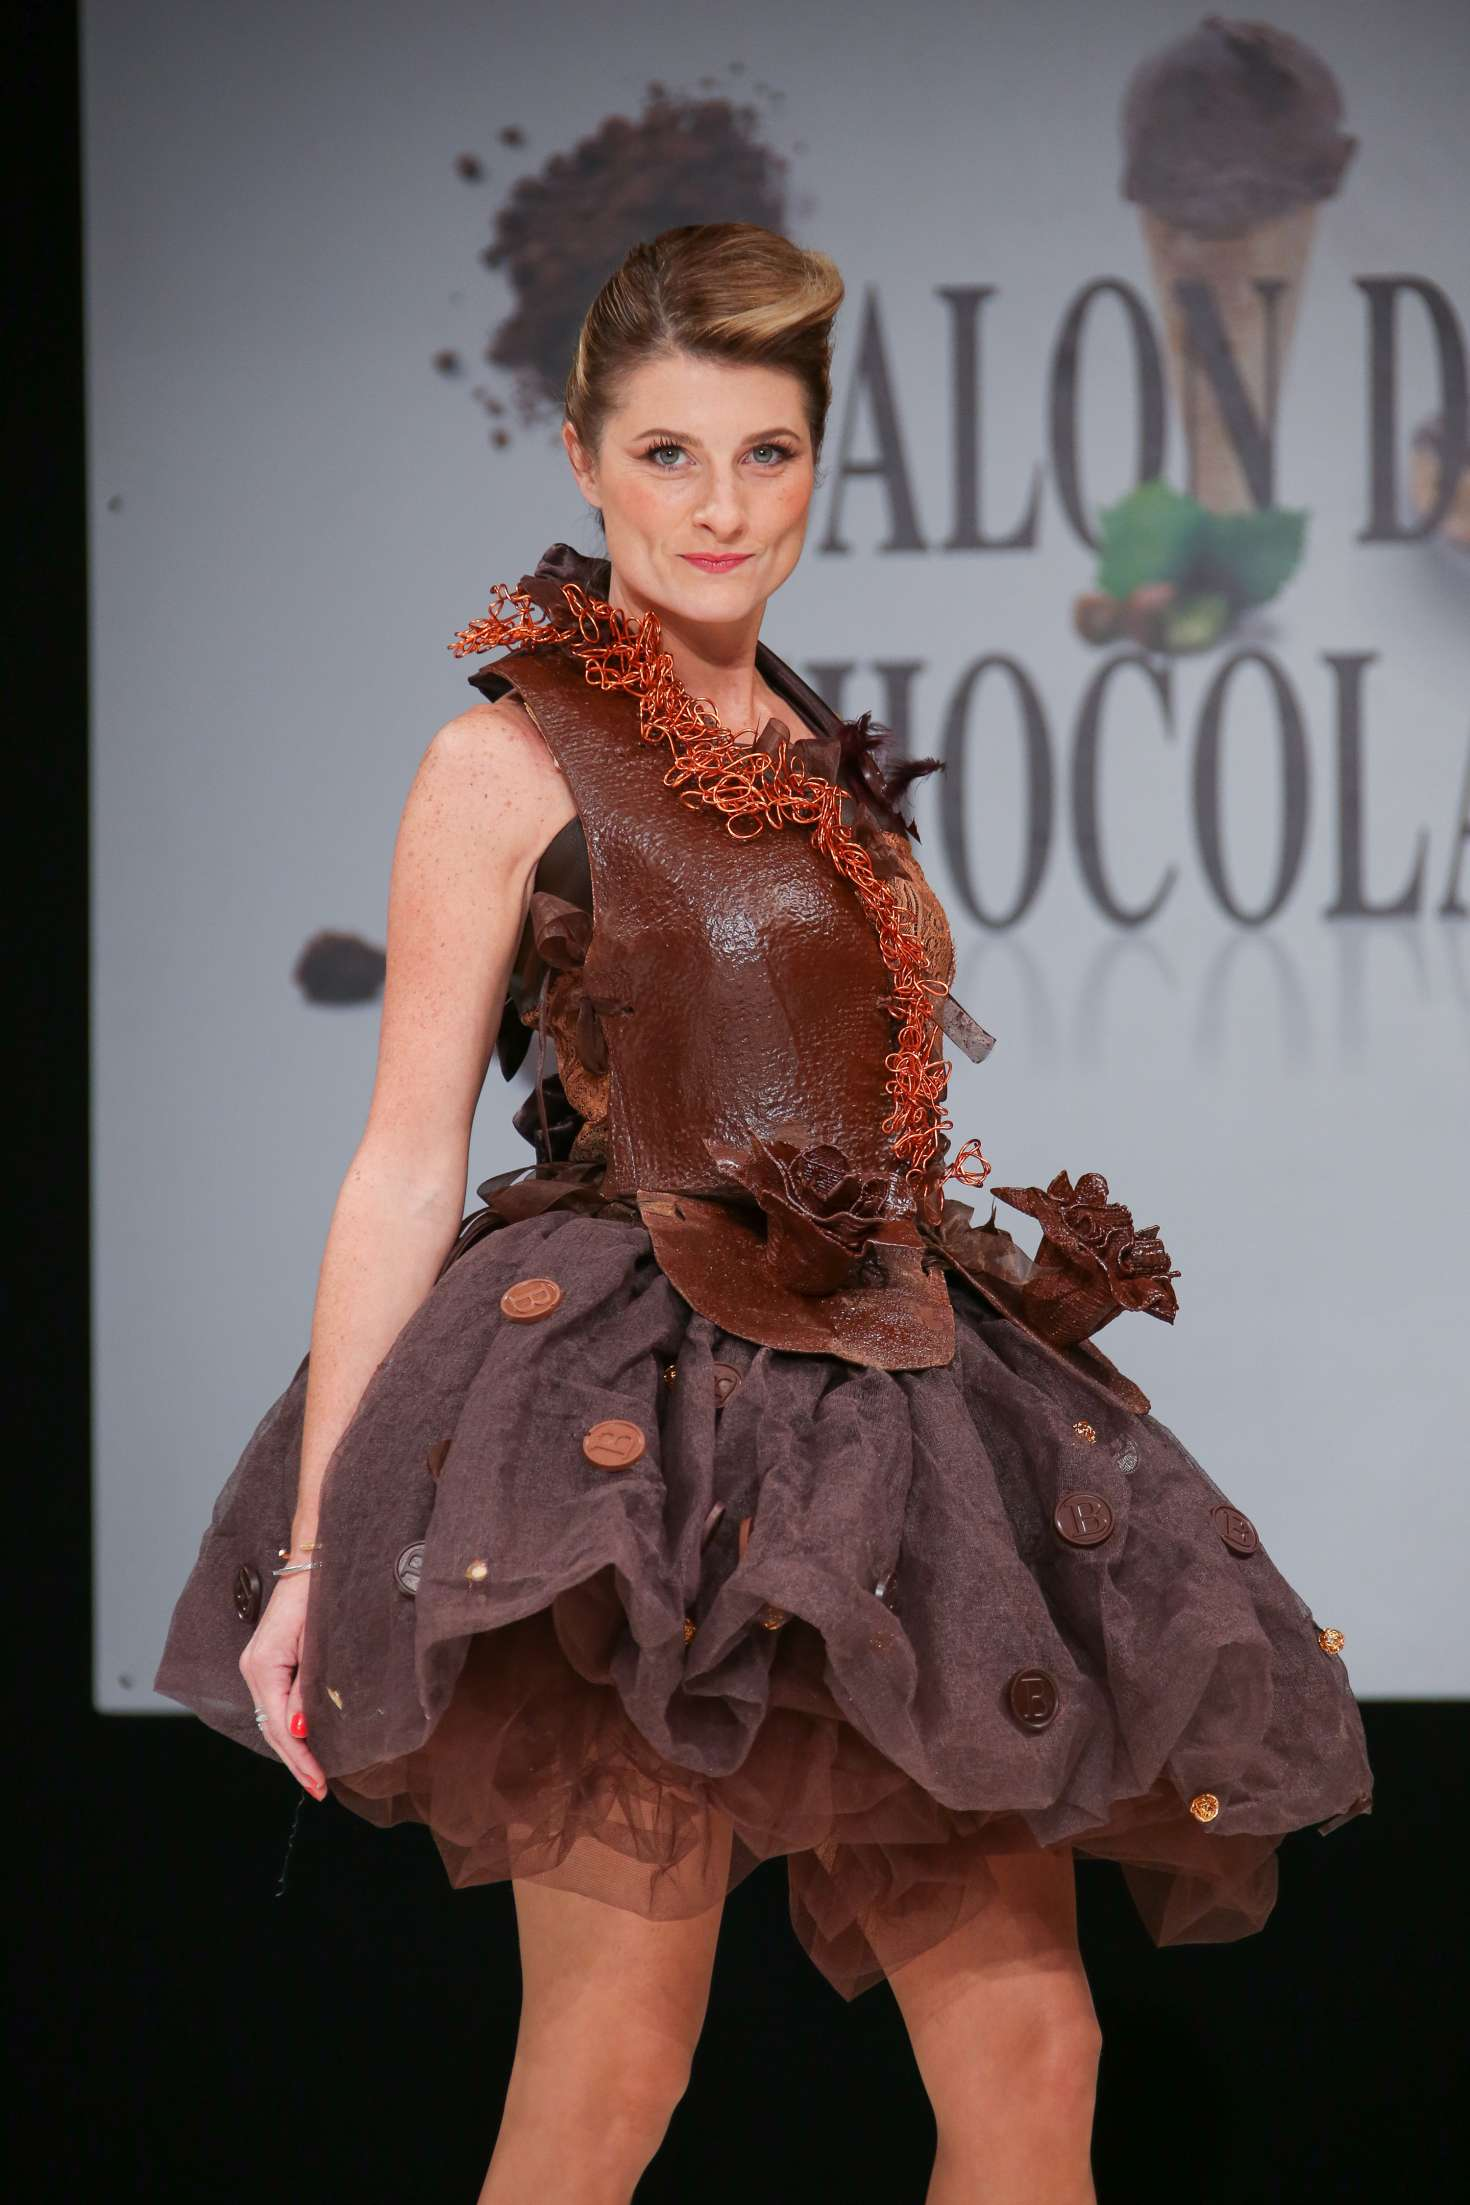 Sandrine arcizet 39 salon du chocolat paris 2017 for Salon du x paris 2017